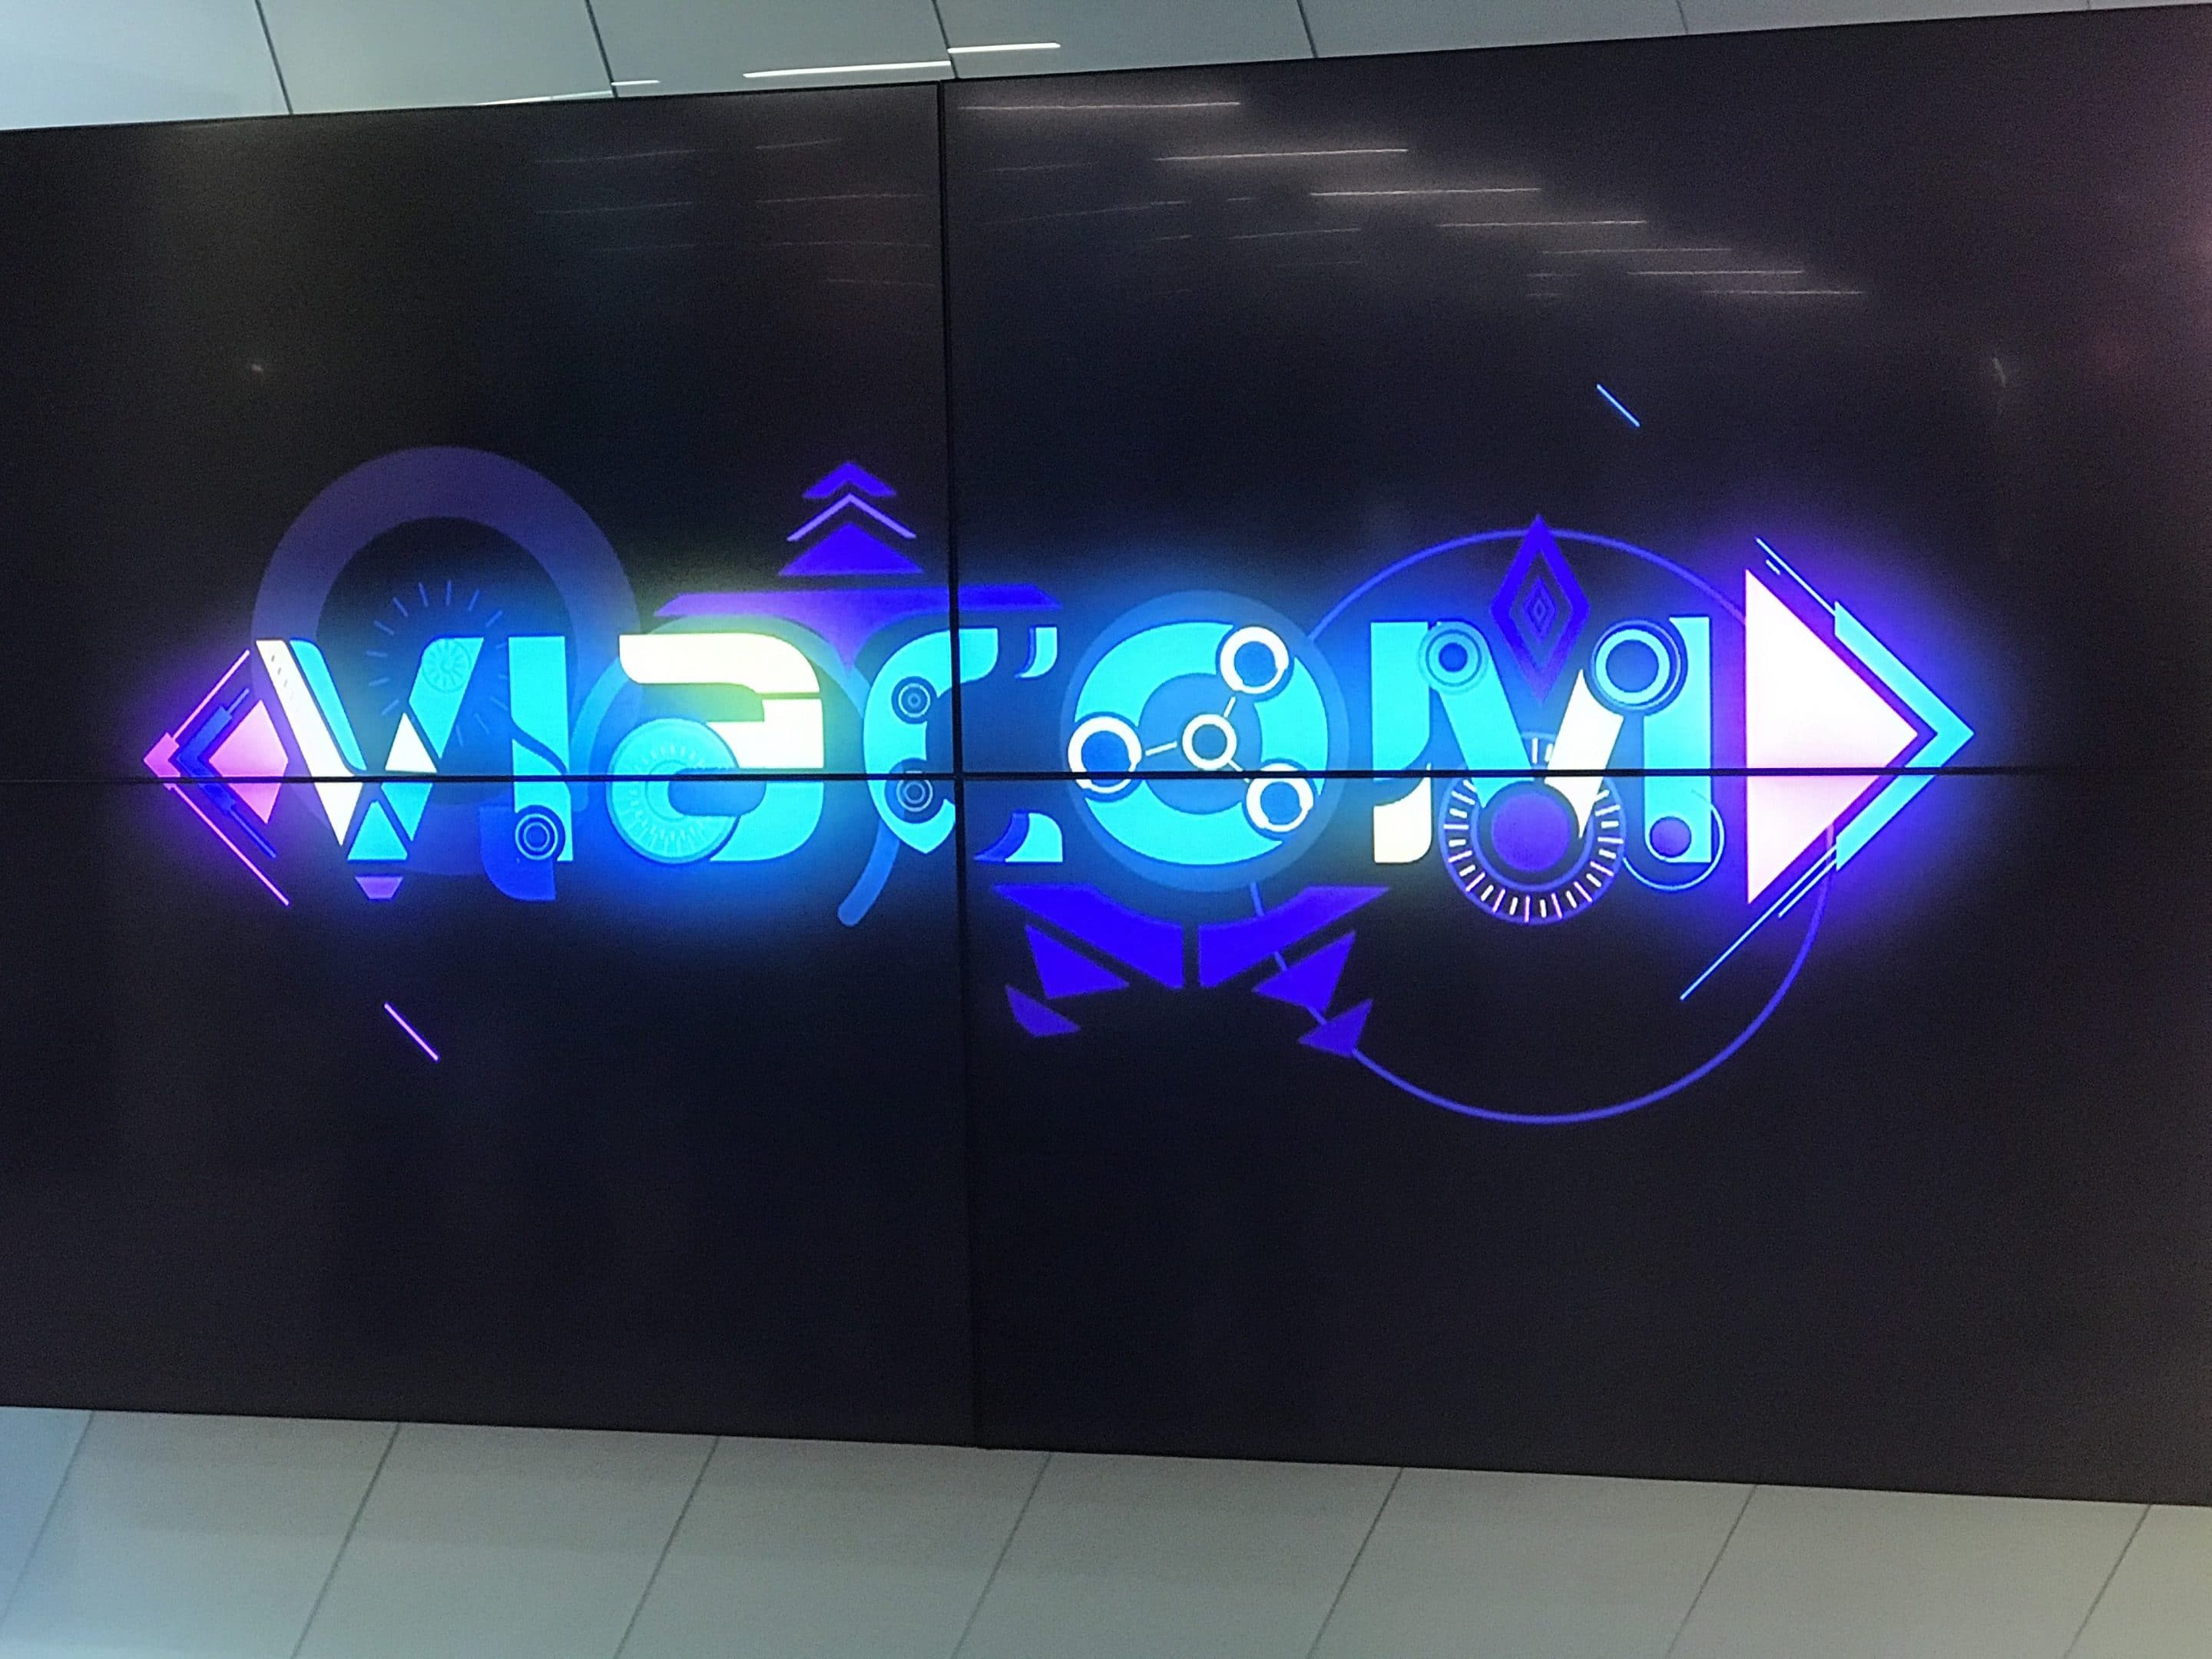 Nickelodeon And Viacom Iptv Case Study Vidovation Wiring Diagram Tv Is A Turnkey Flexible Scalable Enterprise Digital Signage Solution That Empowers Organizations To Incorporate Live Programs